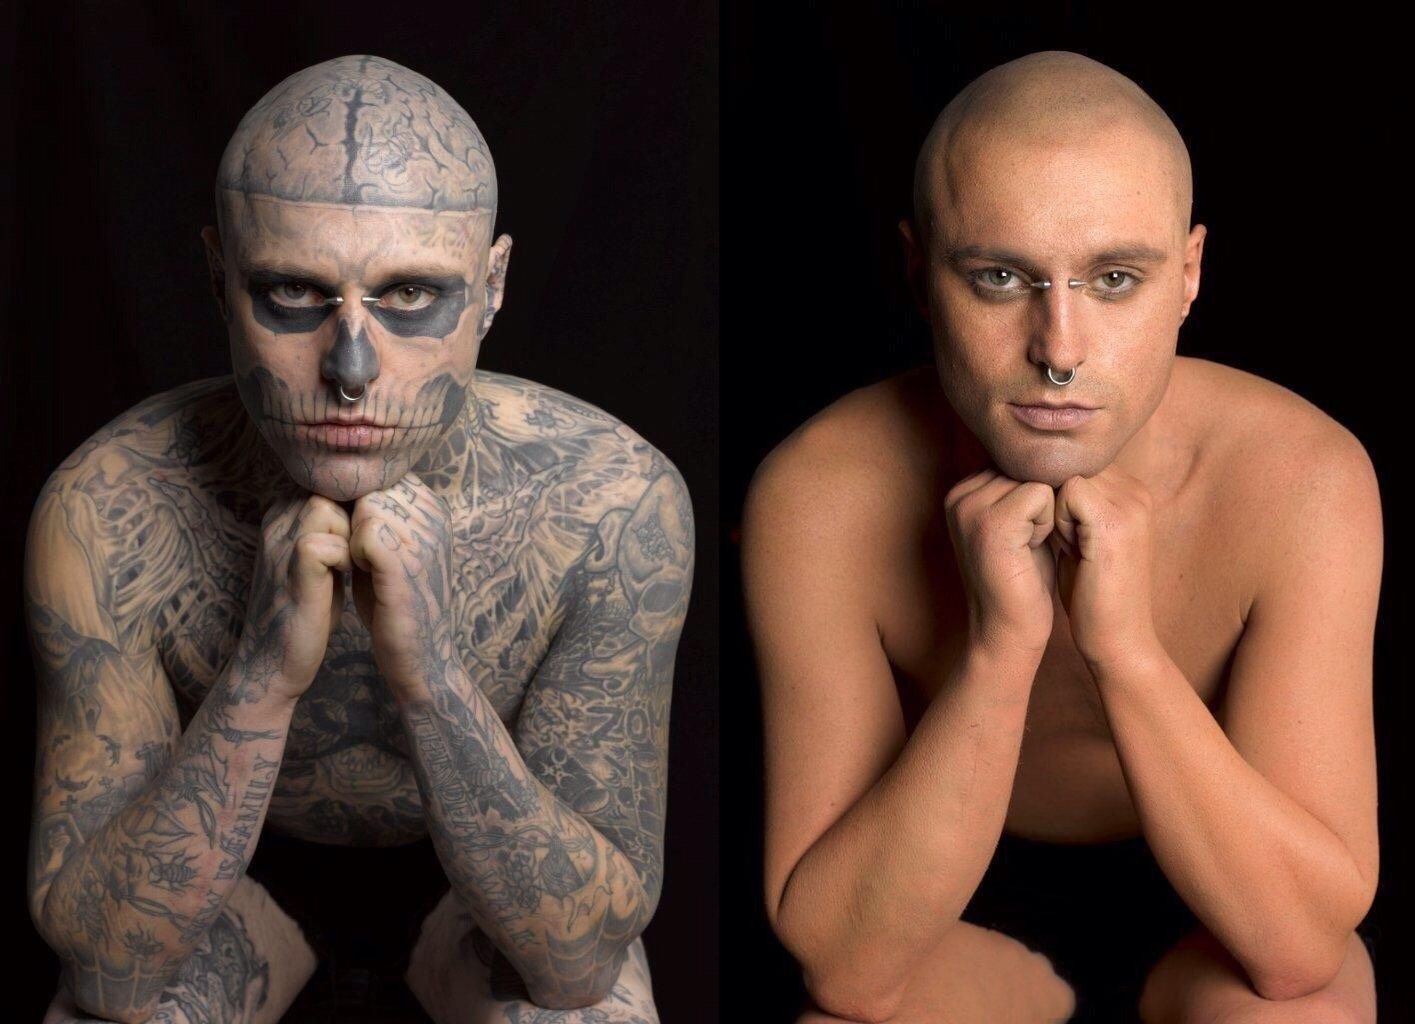 A Before And After Make Up Shoot With Rick Genest Aka Rico The Zombie Boy Famous Tattooed Actor From Canada Beaux Mecs Mec